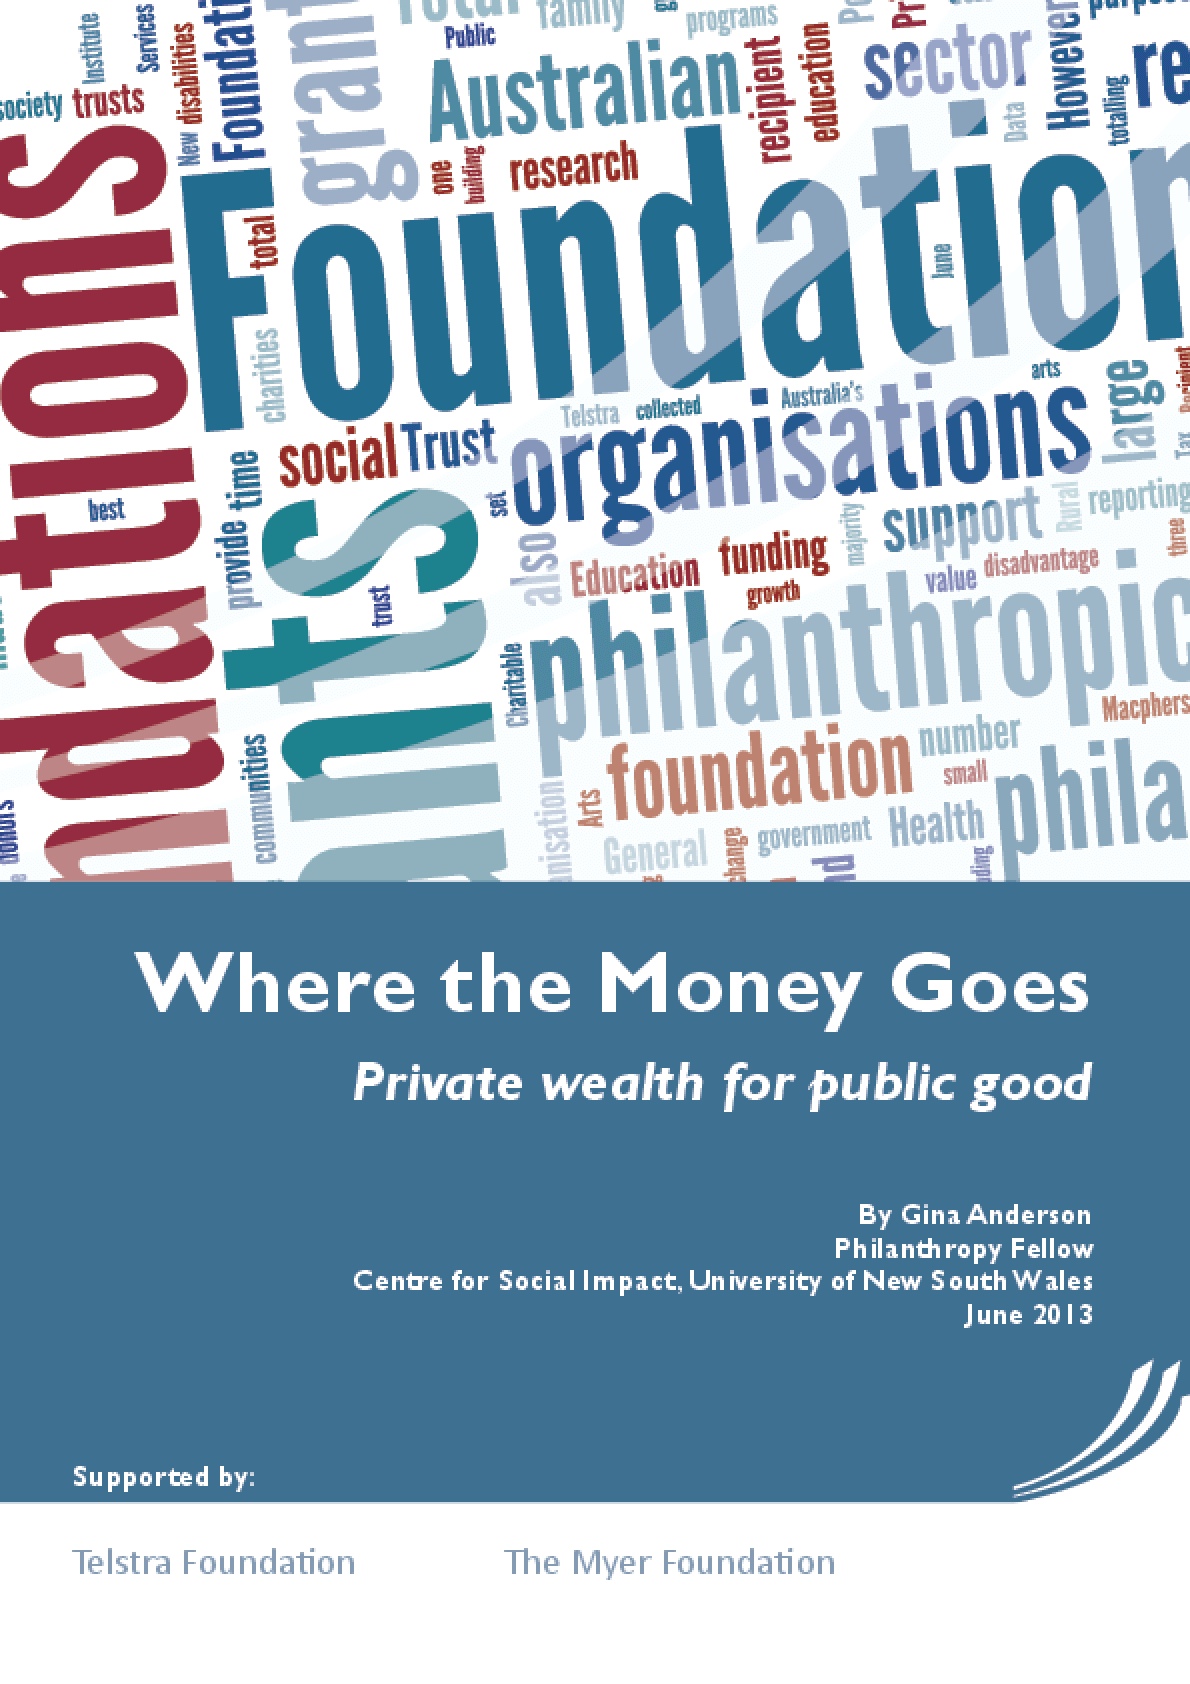 Where the Money Goes: Private Wealth for Public Good